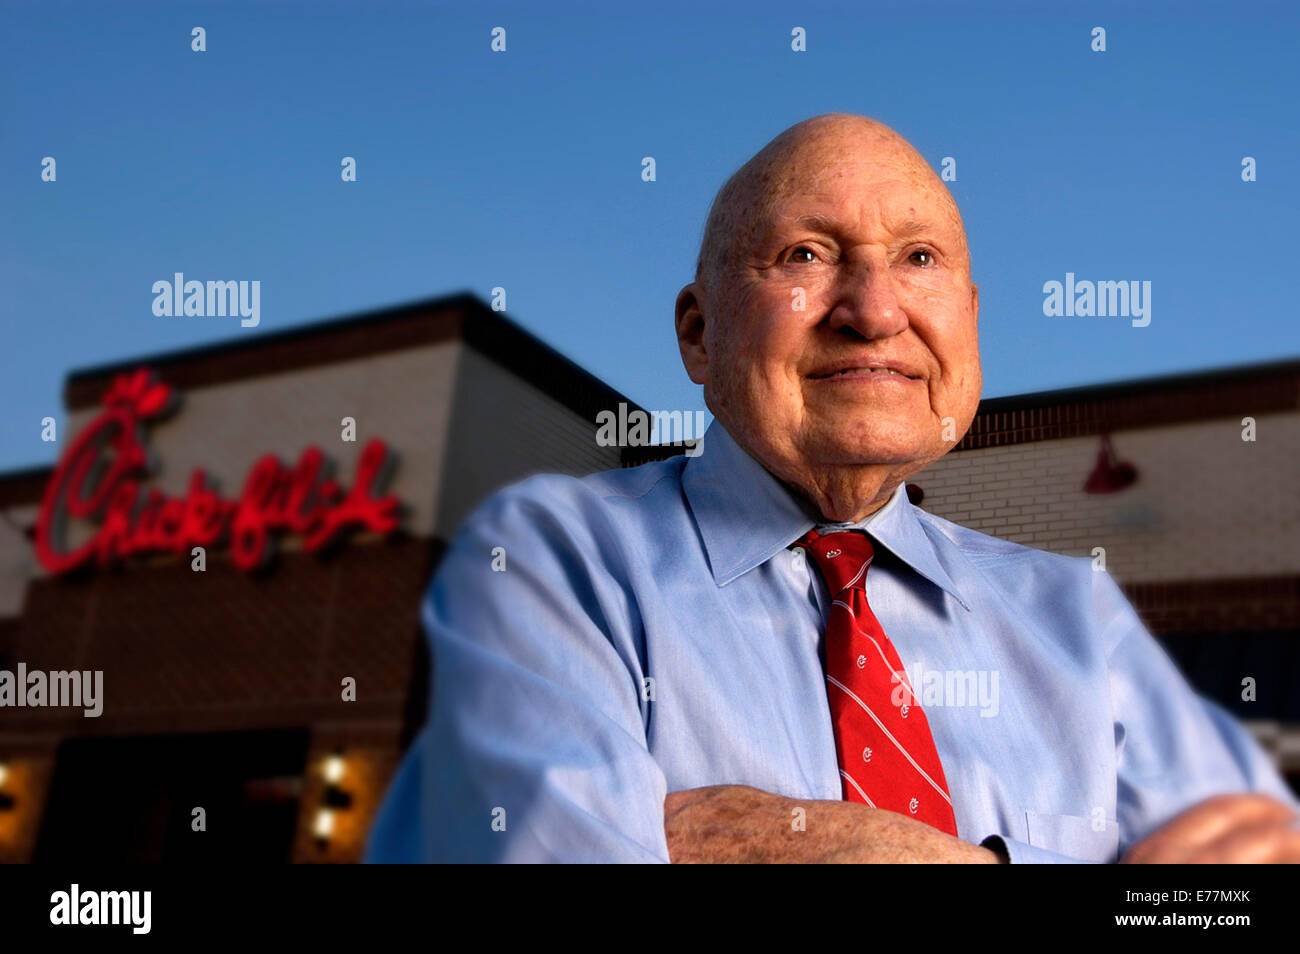 Sept  8, 2014 - Chick-fil-A Founder Truett Cathy Died Monday at Age